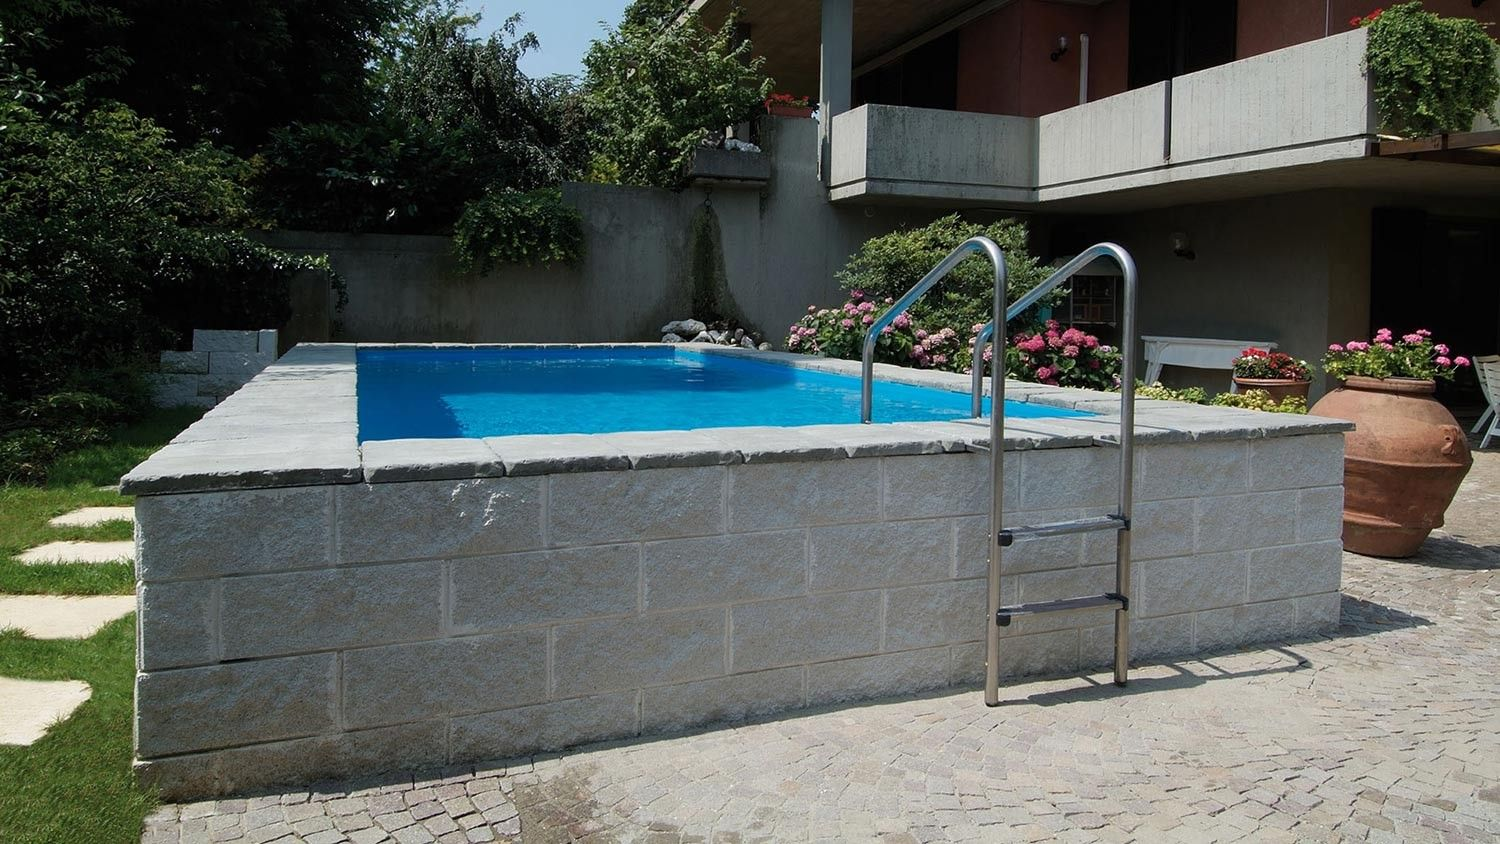 Piscina laghetto dolce vita gold semi 1500 for Piscine laghetto